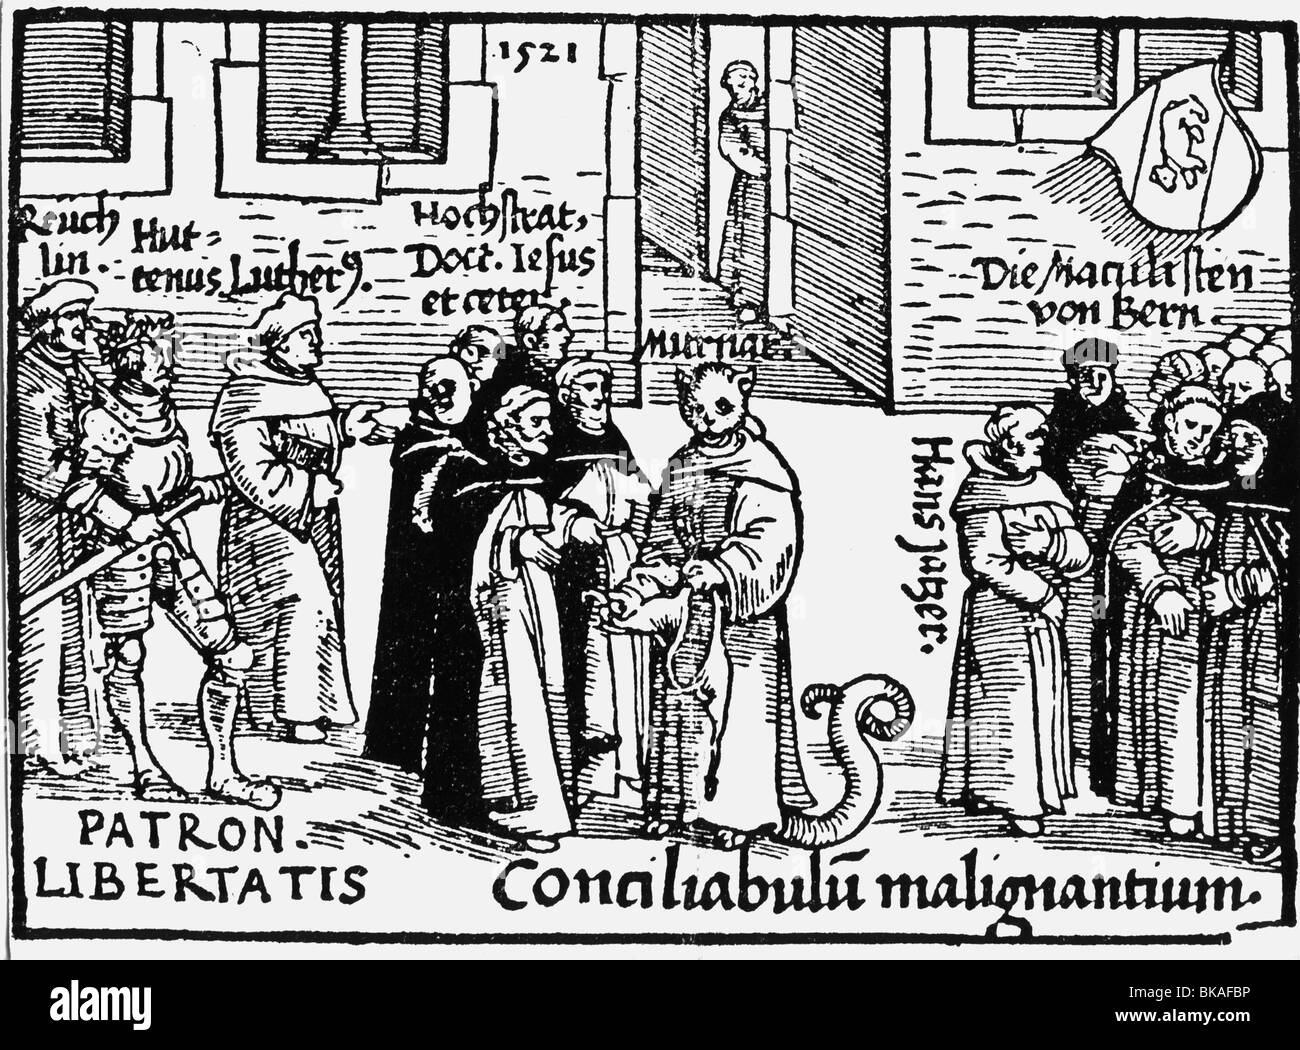 events, Protestant Reformation, 1517 - 1555, propaganda, cartoon, Martin Luther, Ulrich von Hutten and Johann Reuchlin - Stock Image